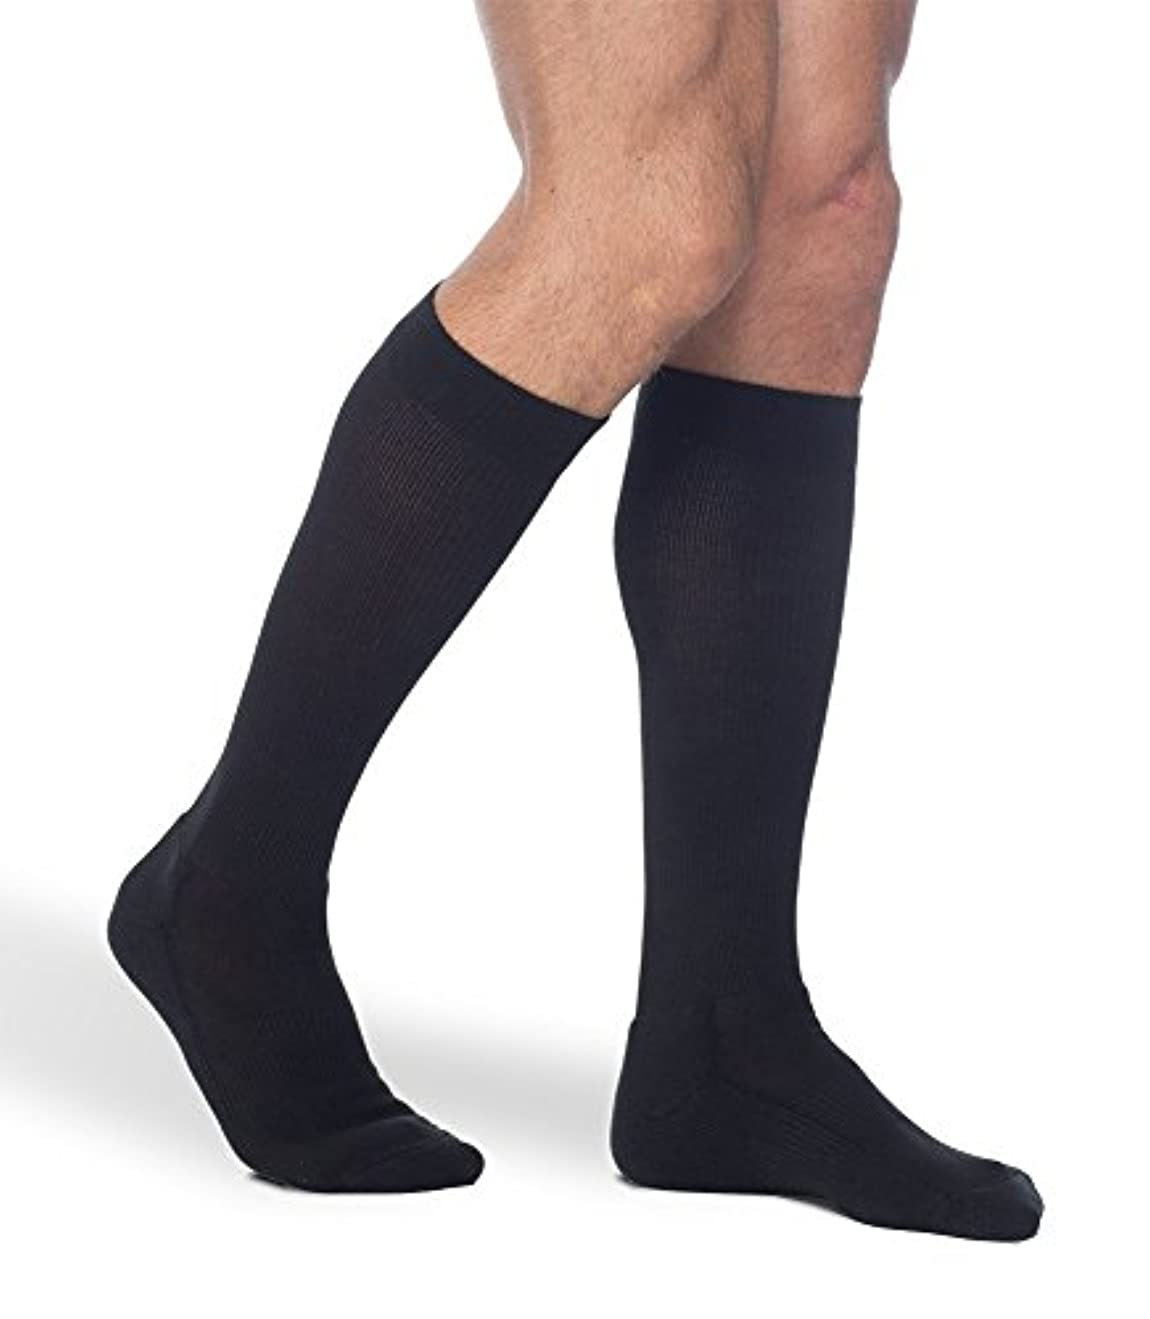 絶対に友情設置Sigvaris Mens Cushioned Cotton Support Therapy Socks 15-20mmHg : Size A Black by Sigvaris